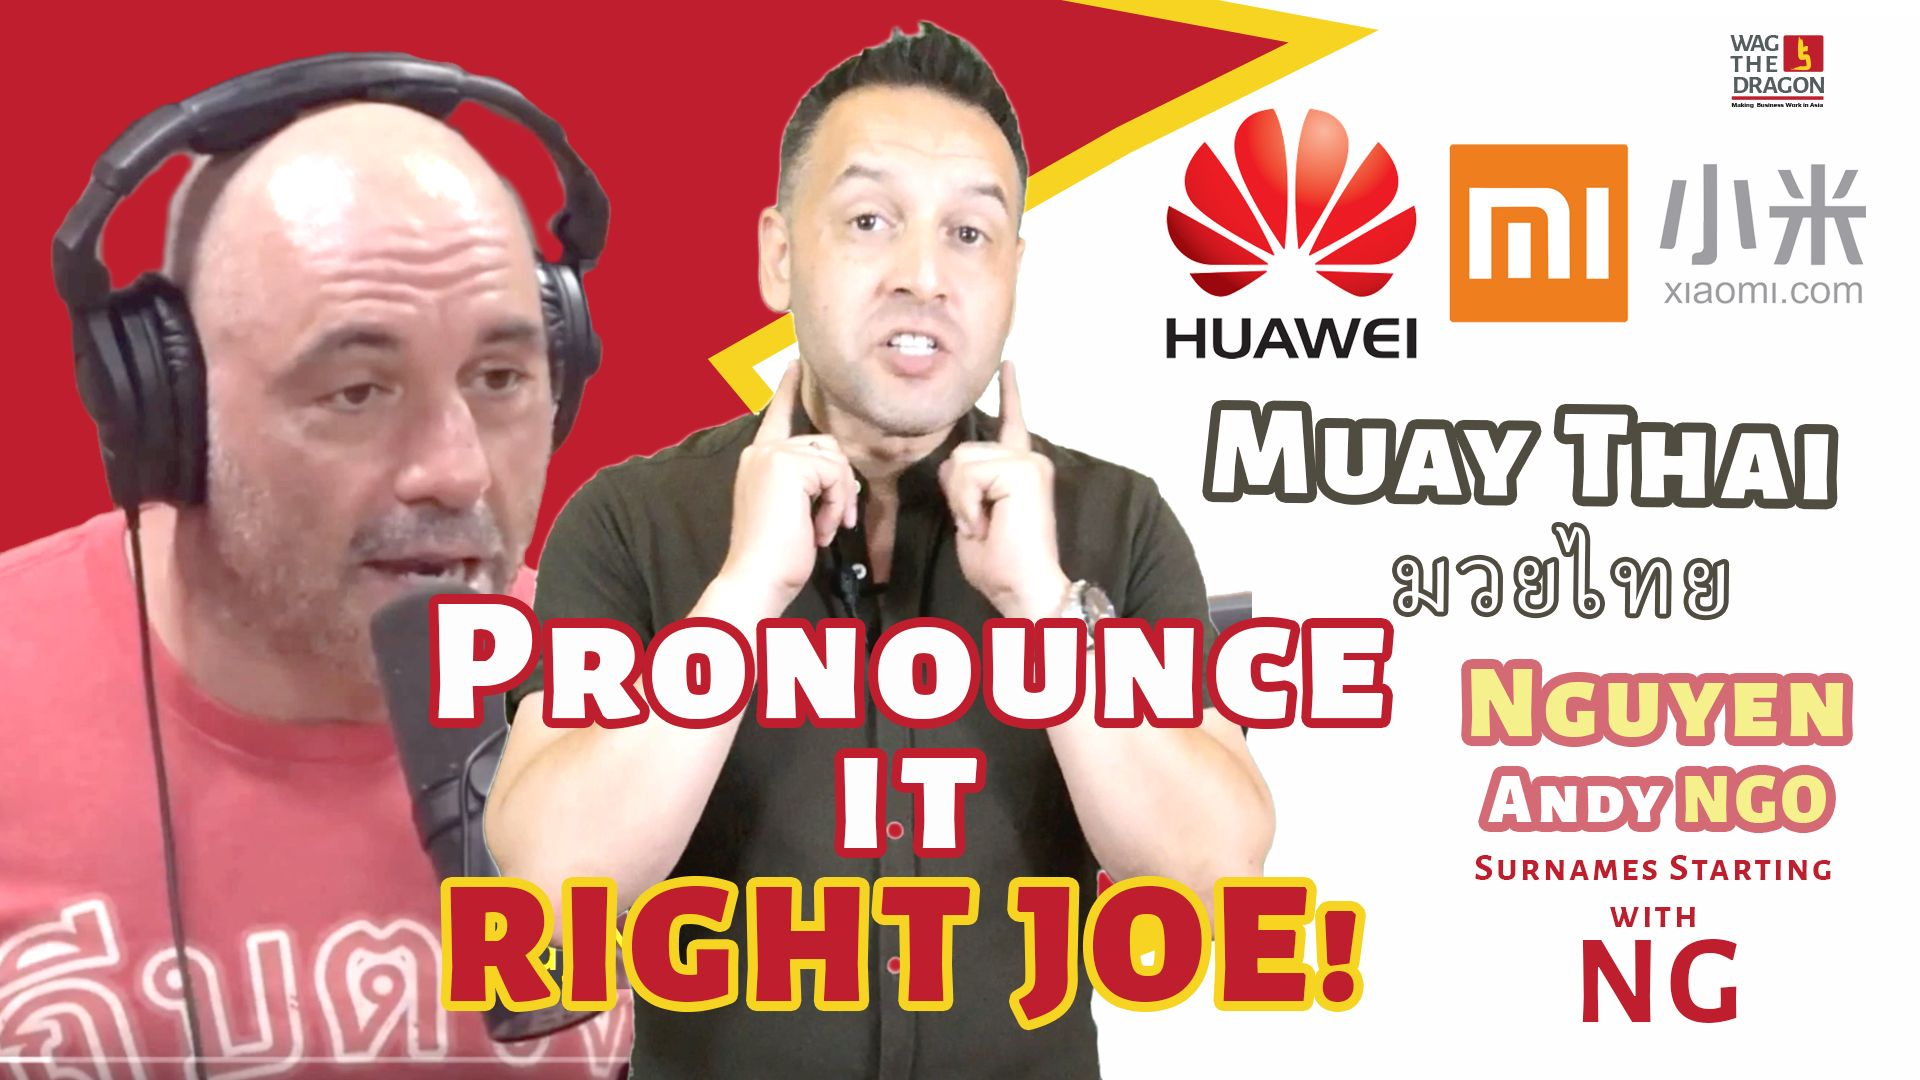 Pronounce it Right Joe Rogan - Huawei, Xiaomi, Muay Thai Andy 'Ngo' and 'Nguyen' 'NG' Names